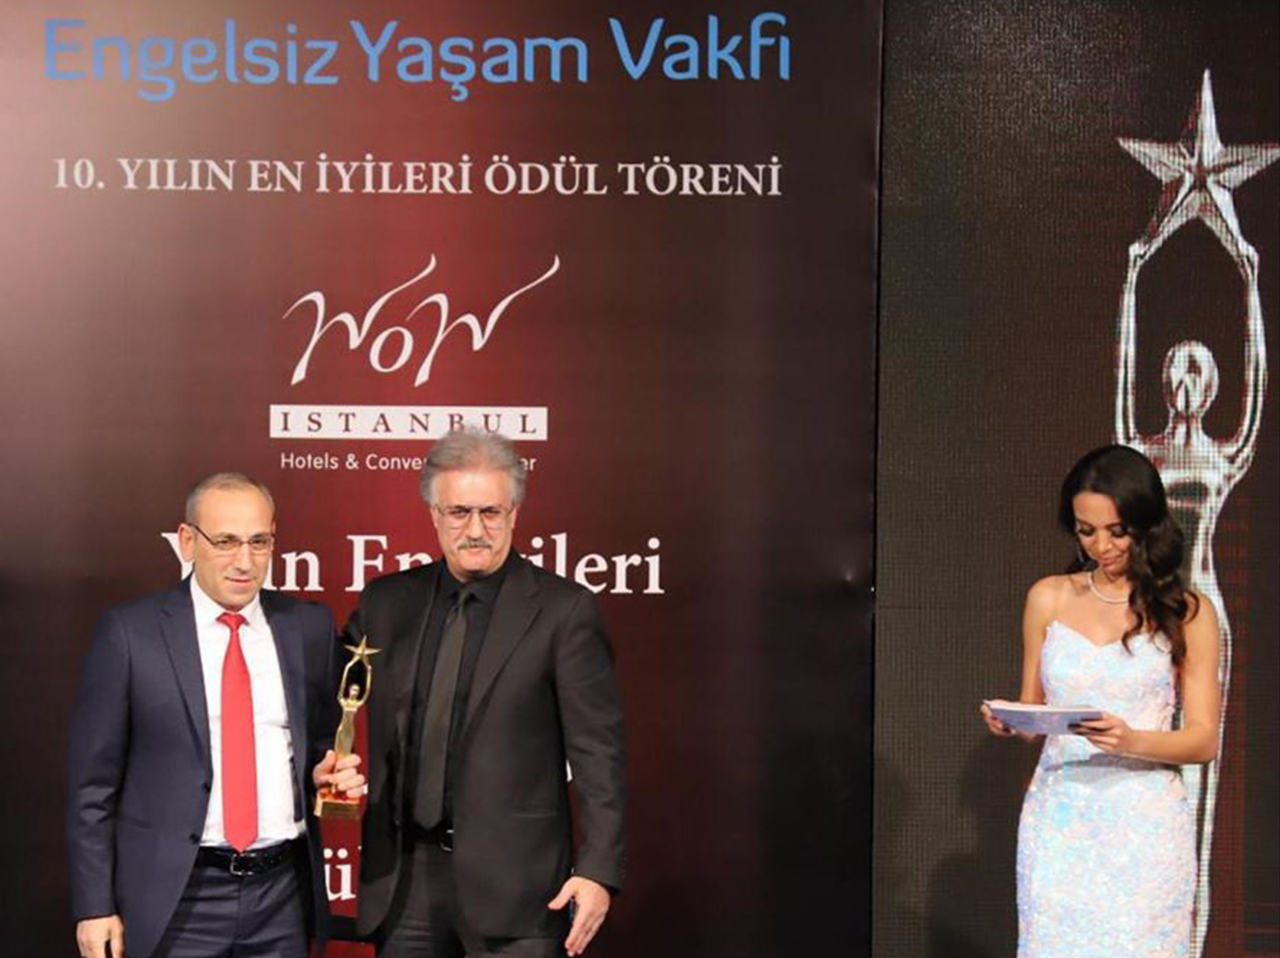 We won the best logistics company award from Engelsiz Yaşam Vakfı.